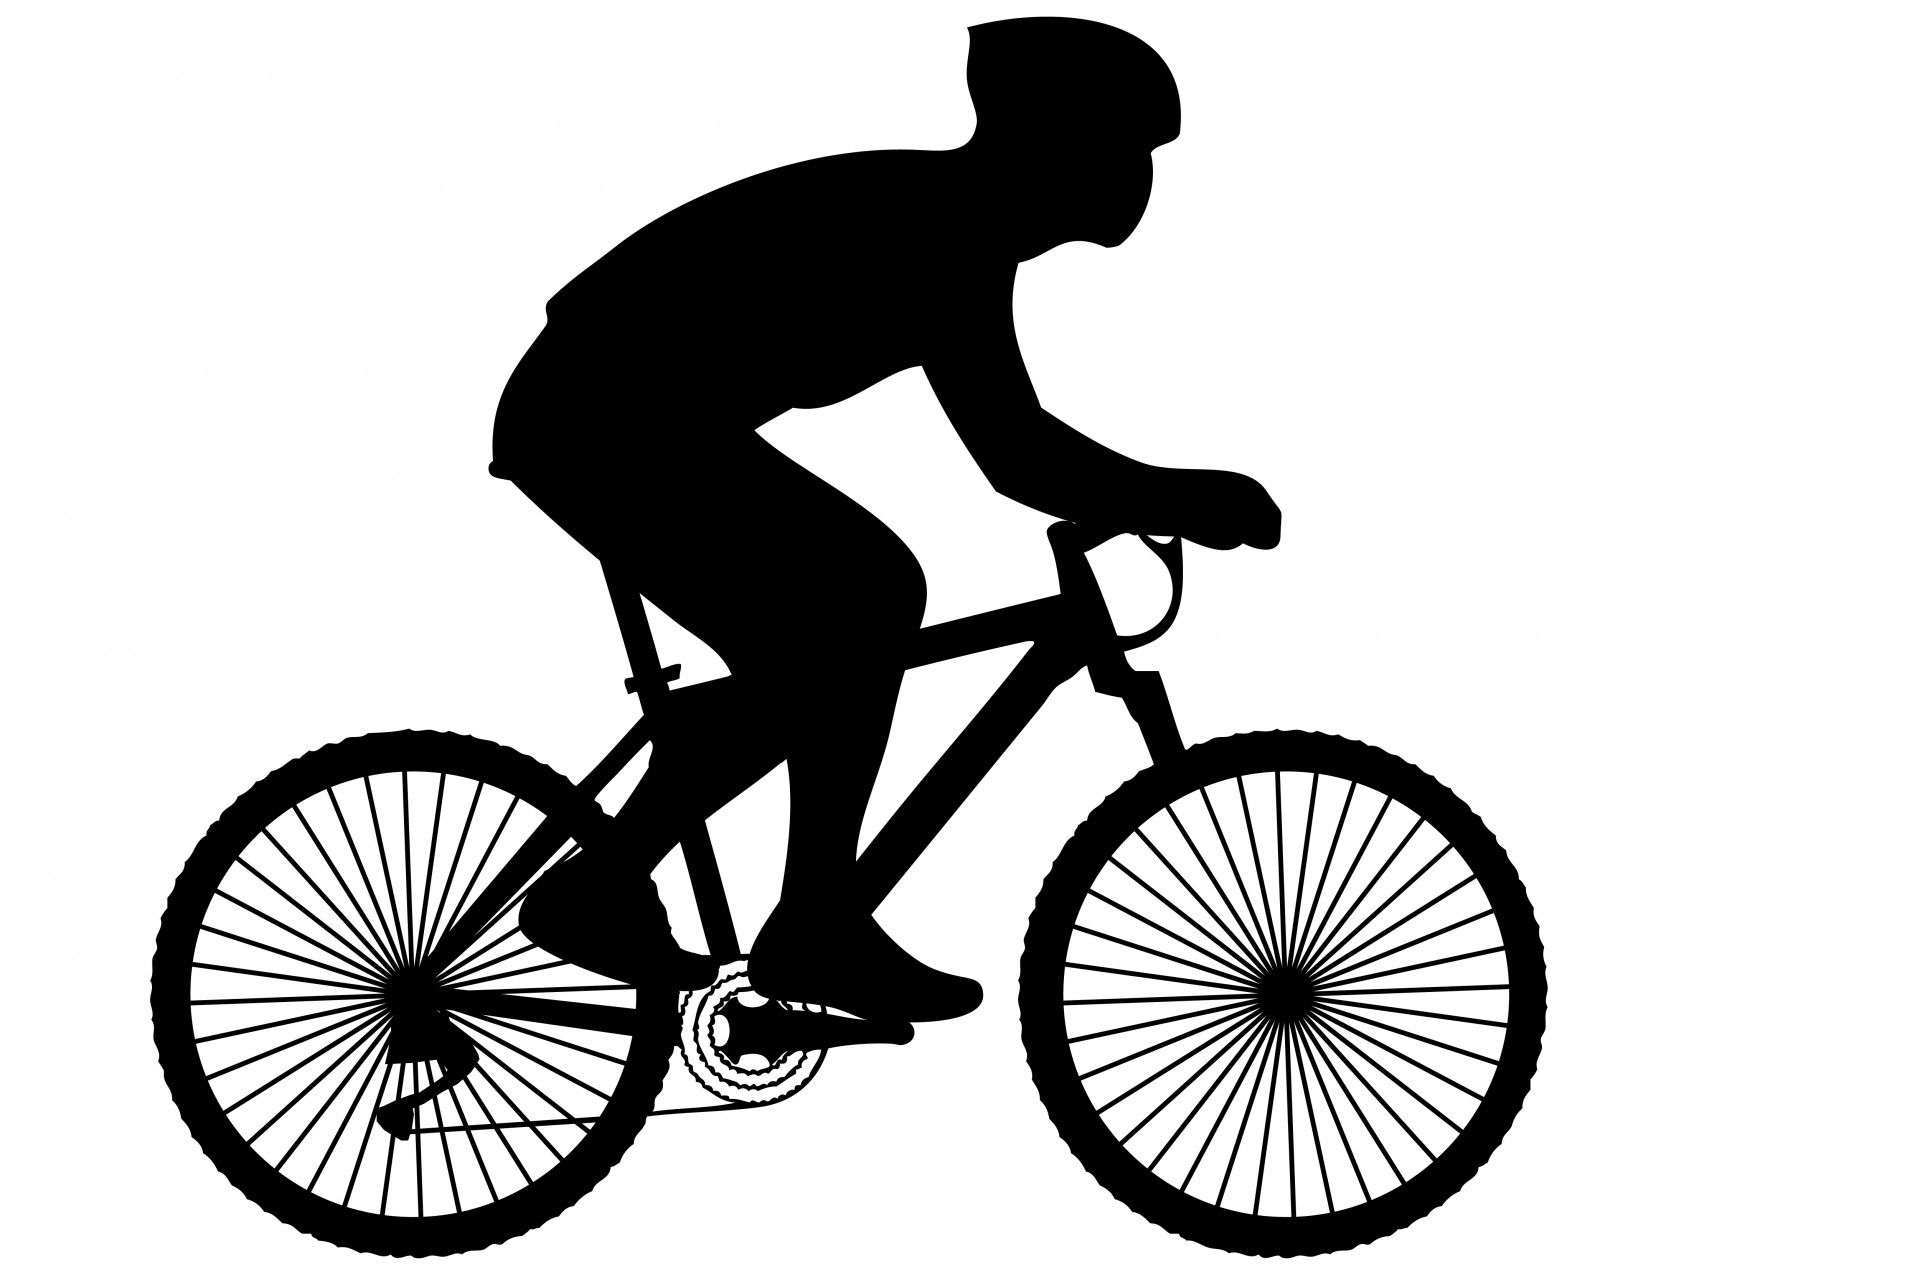 Cyclist Black Silhouette Clipart Free Stock Photo With